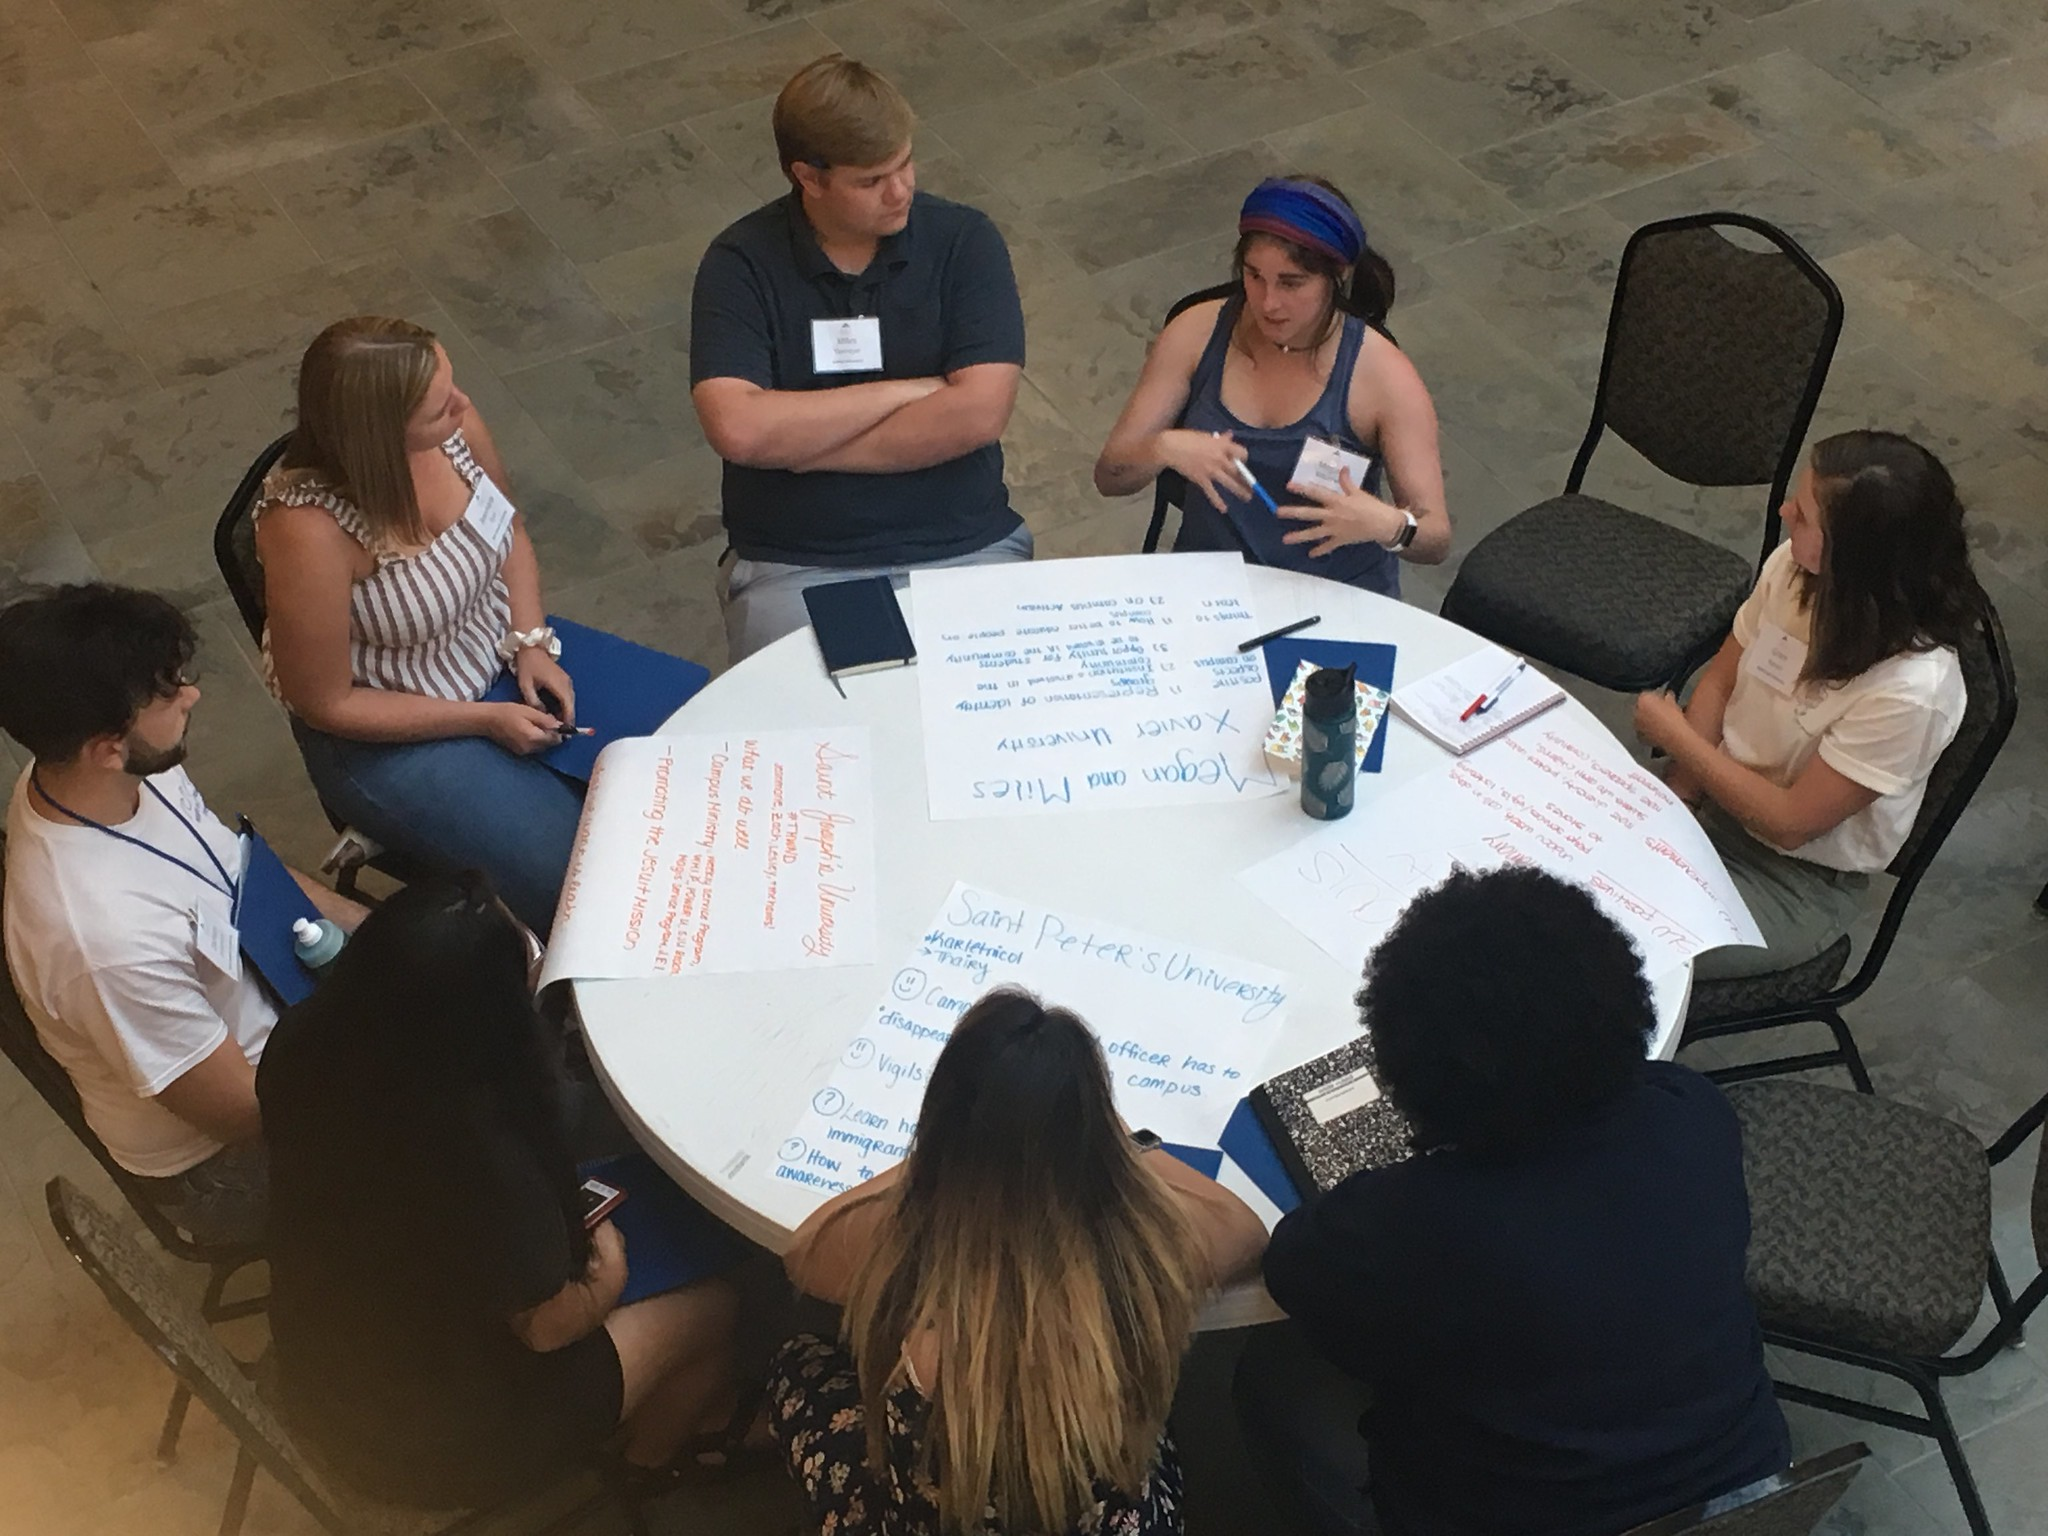 Students shared stories and ideas during group break-out sessions (photo by Ignatian Solidarity Network)